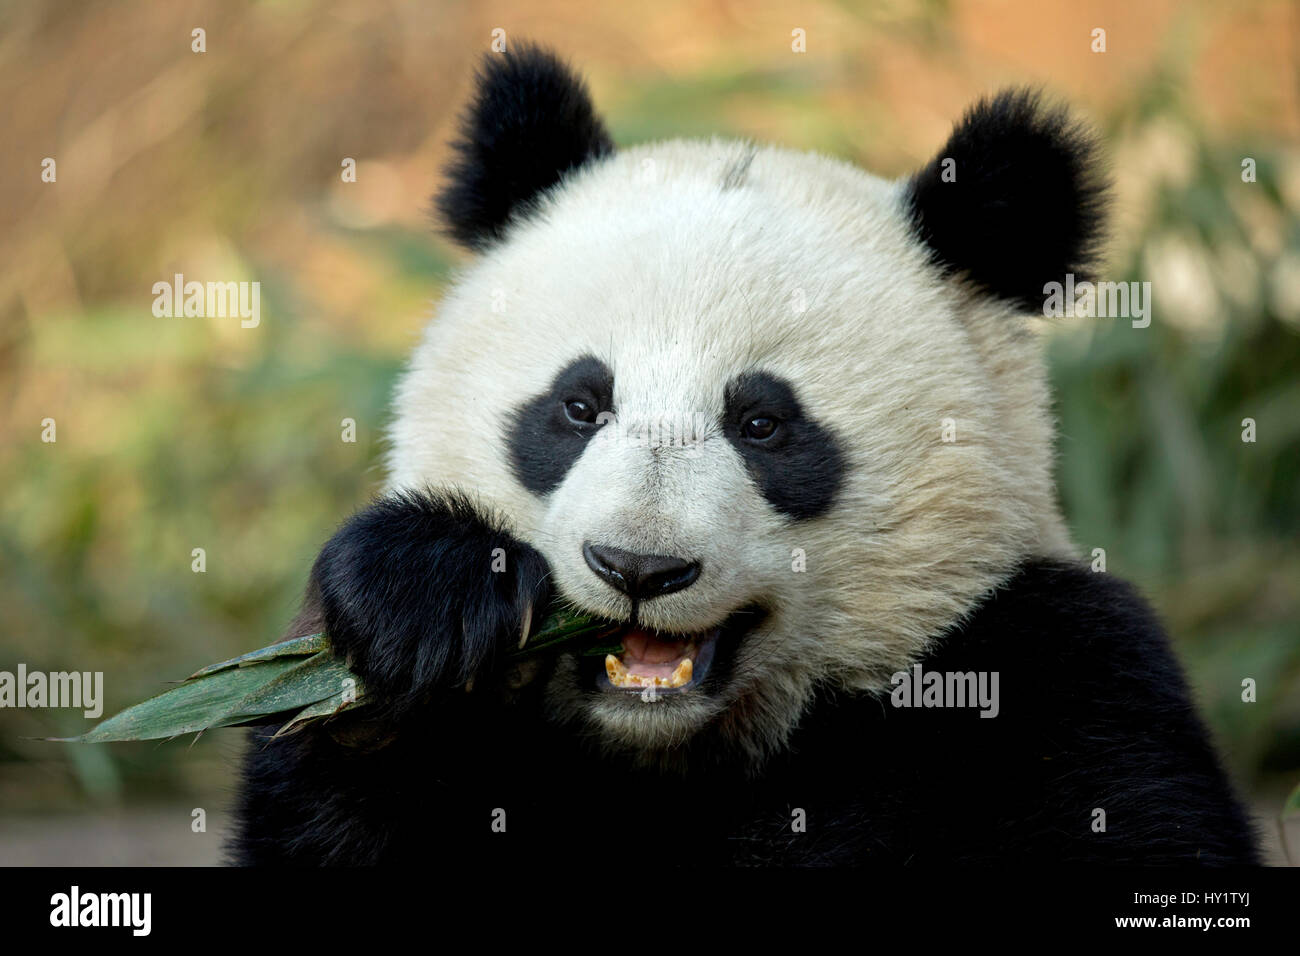 Giant Panda (Ailuropoda melanoleuca) sub adult feeding. Bifengxia, China. Captive. Stock Photo